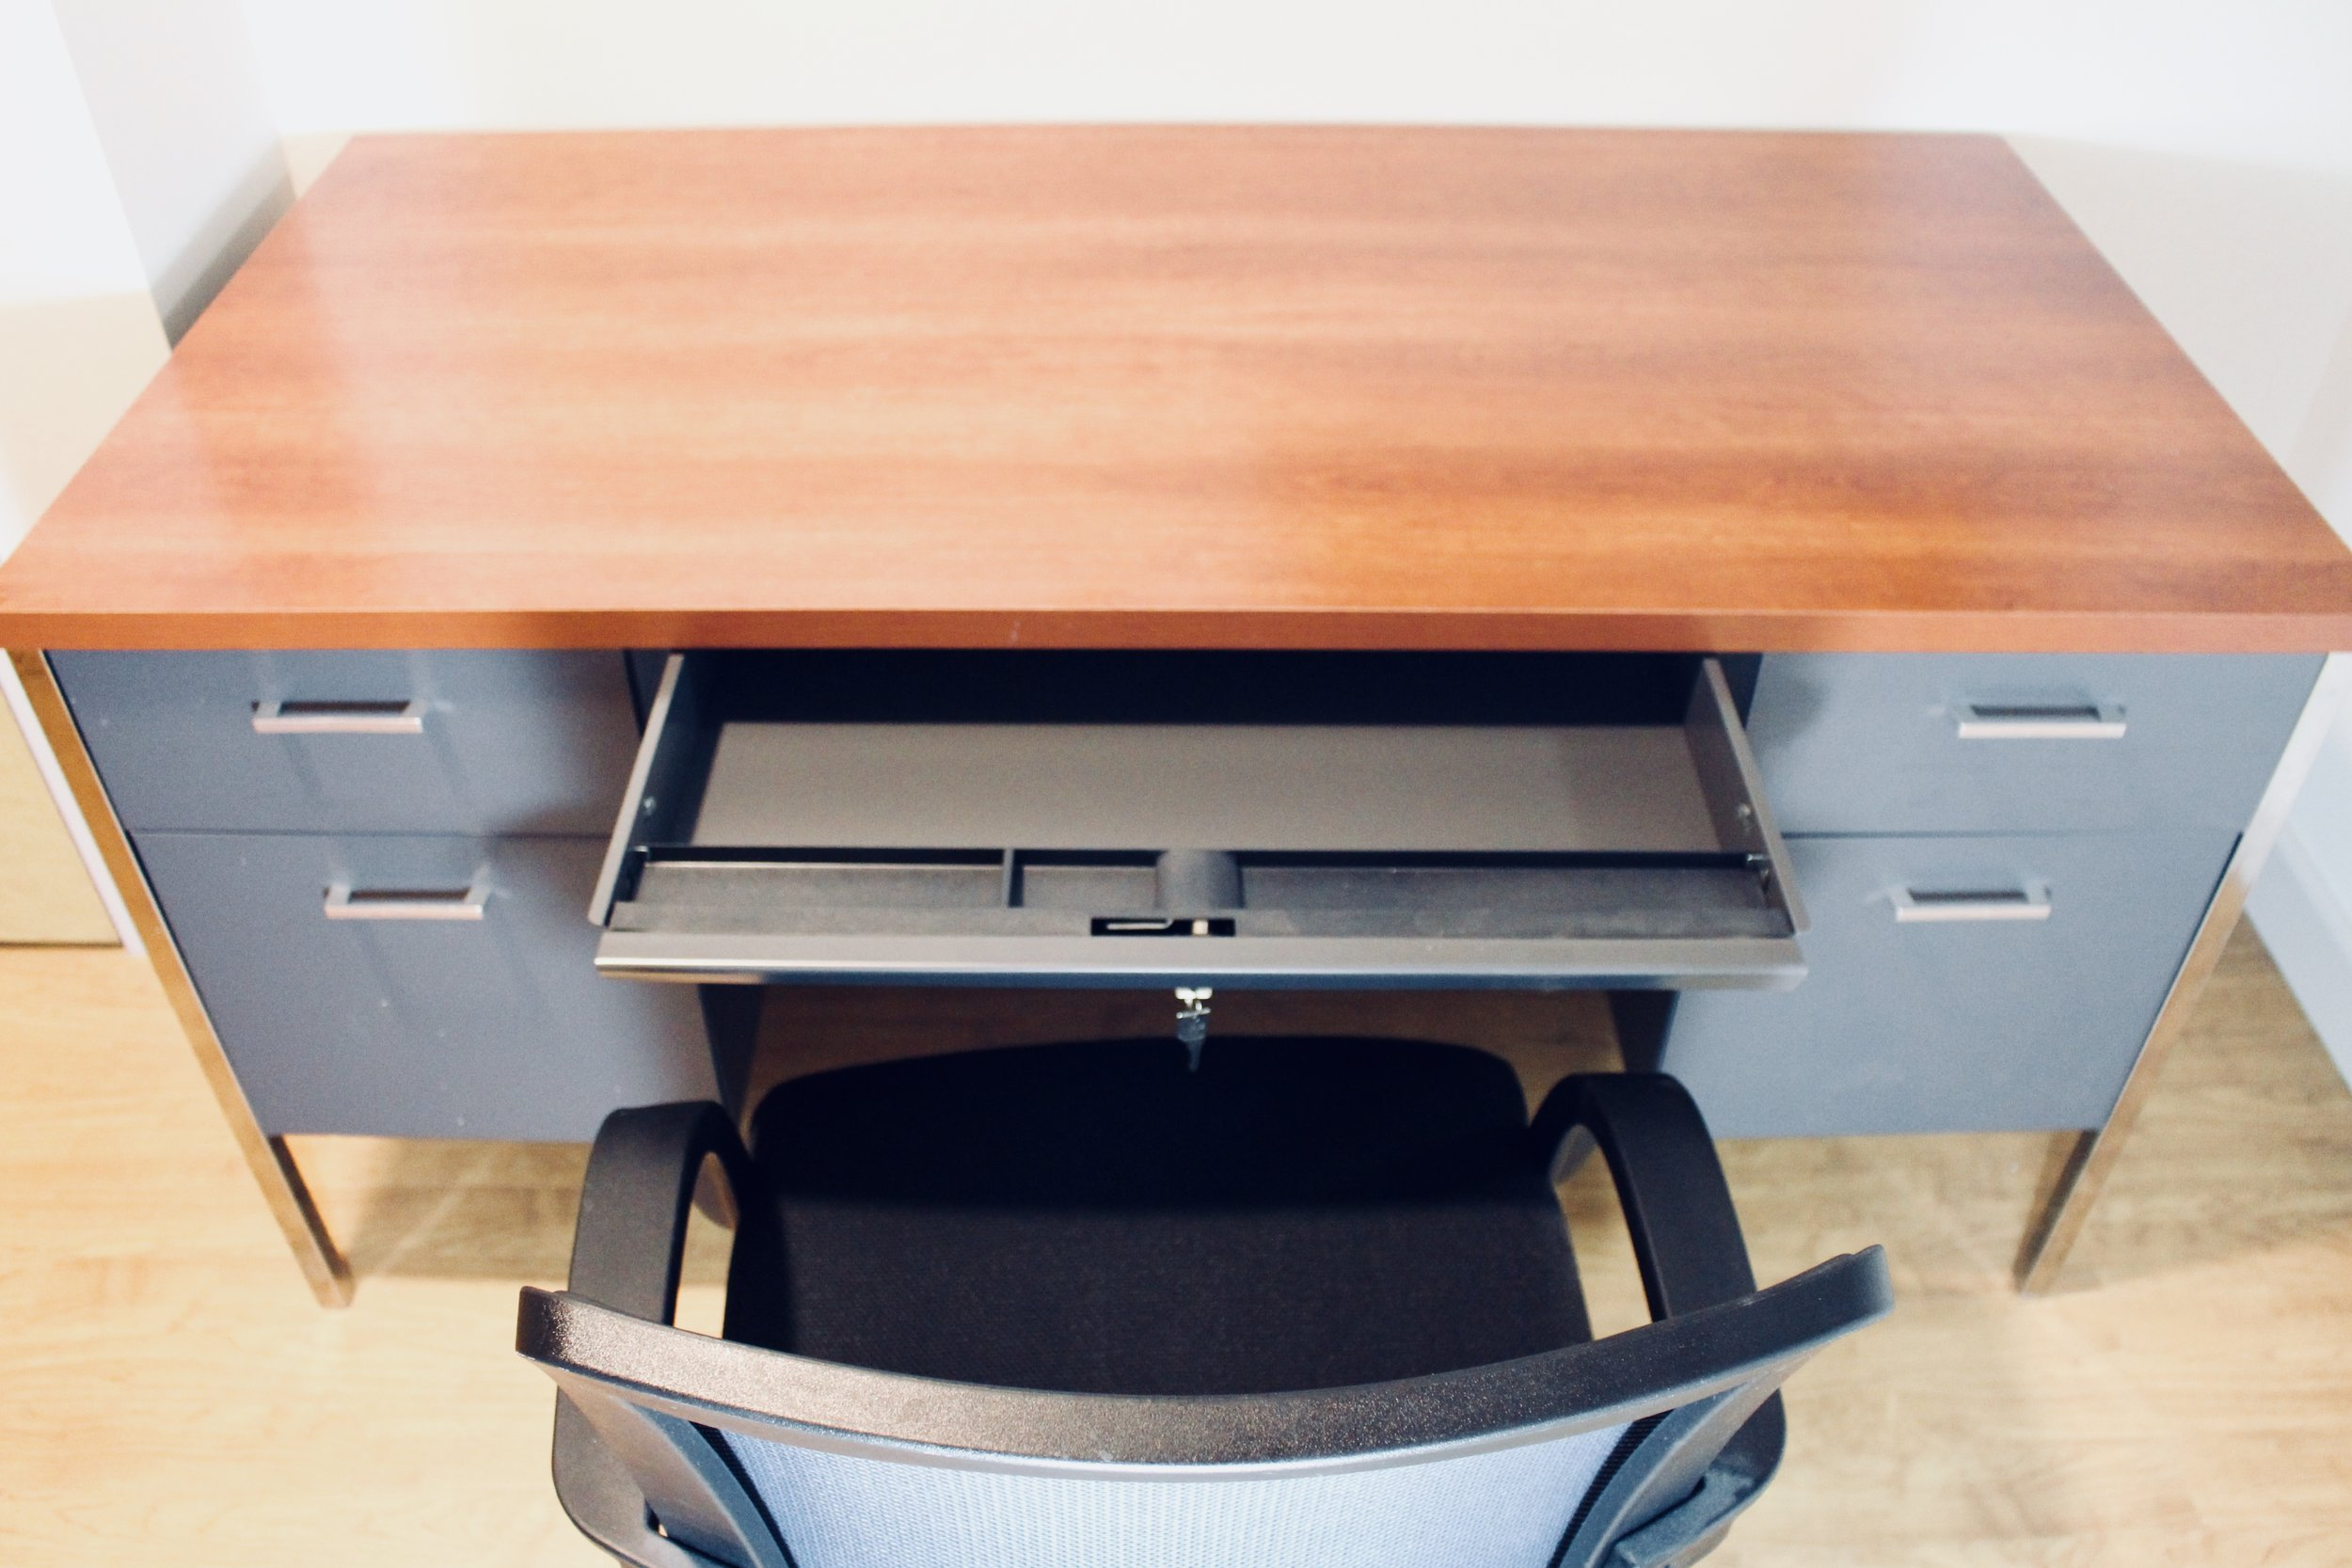 Hon Desk with Auto Locking System